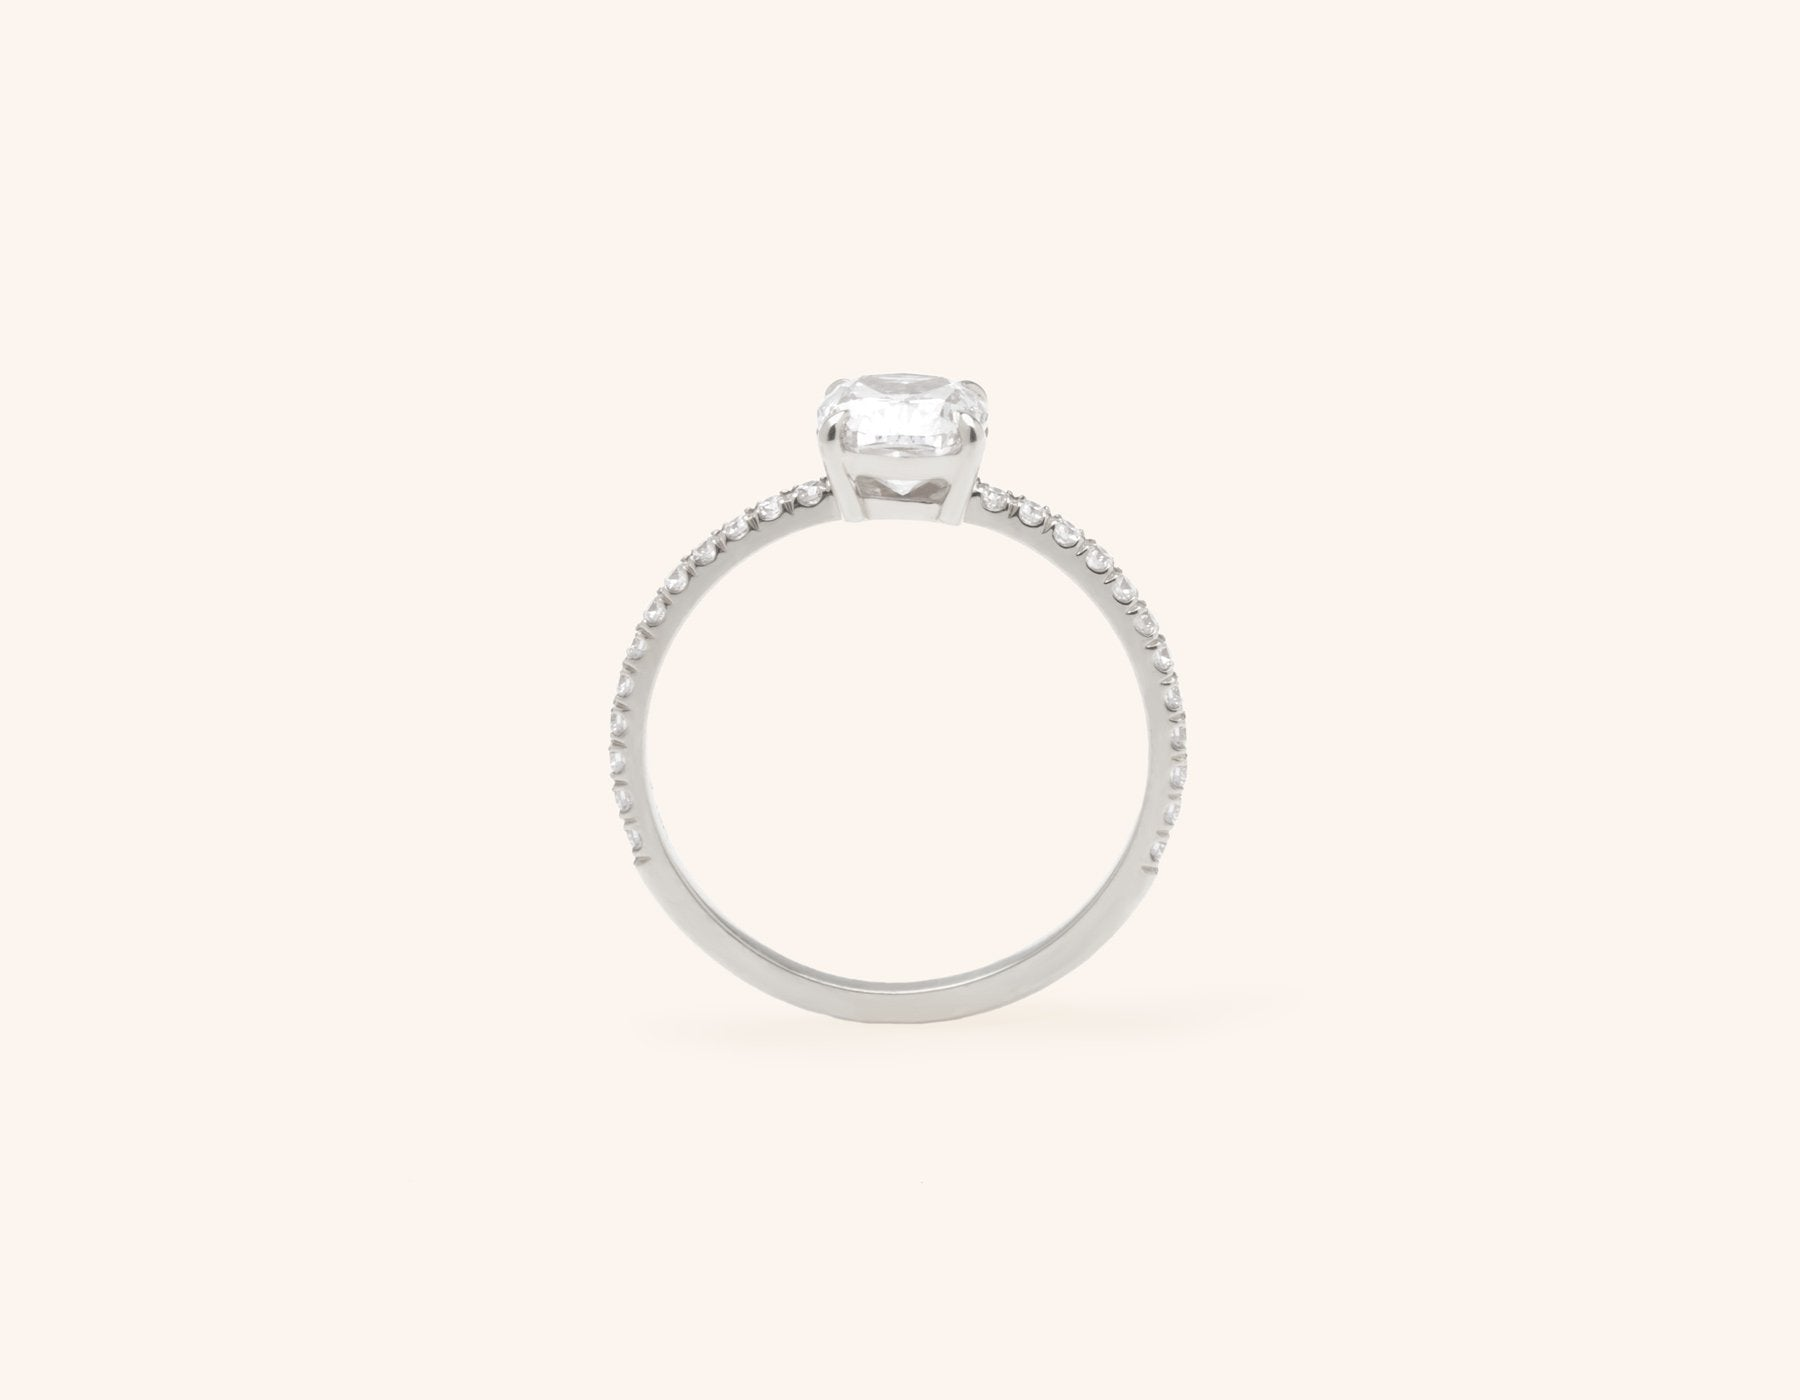 Vrai and Oro modern classic The Cushion pave diamond engagement ring platinum sustainable jewelry